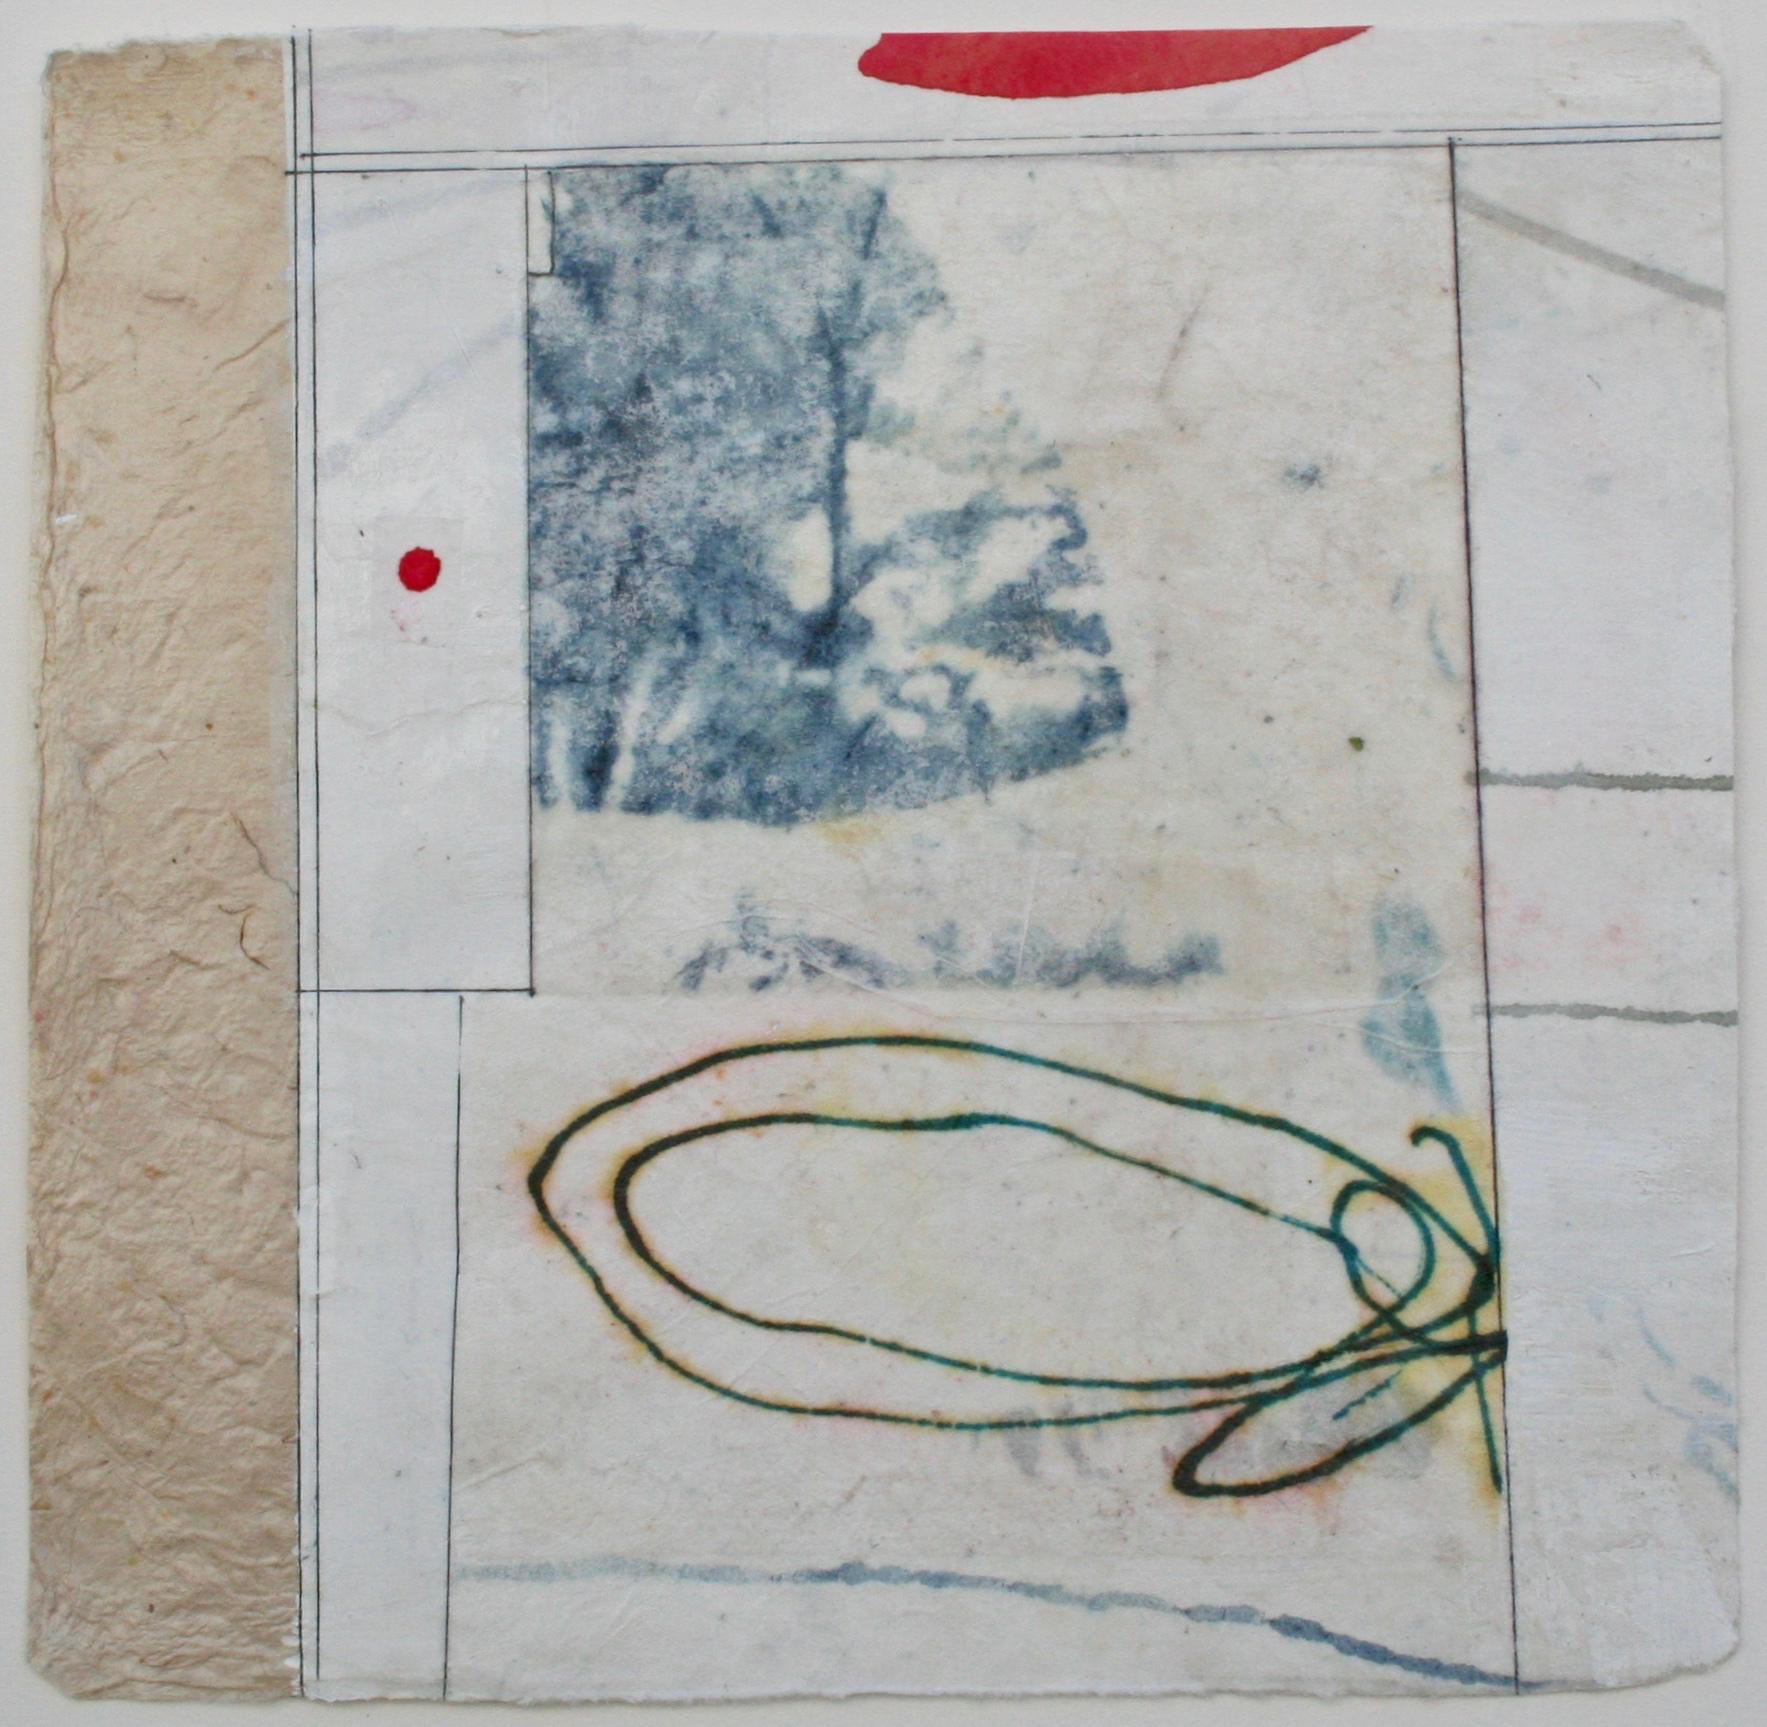 lasso  10 x 10  mixed media on Bhutanese paper  sold  .  .  .